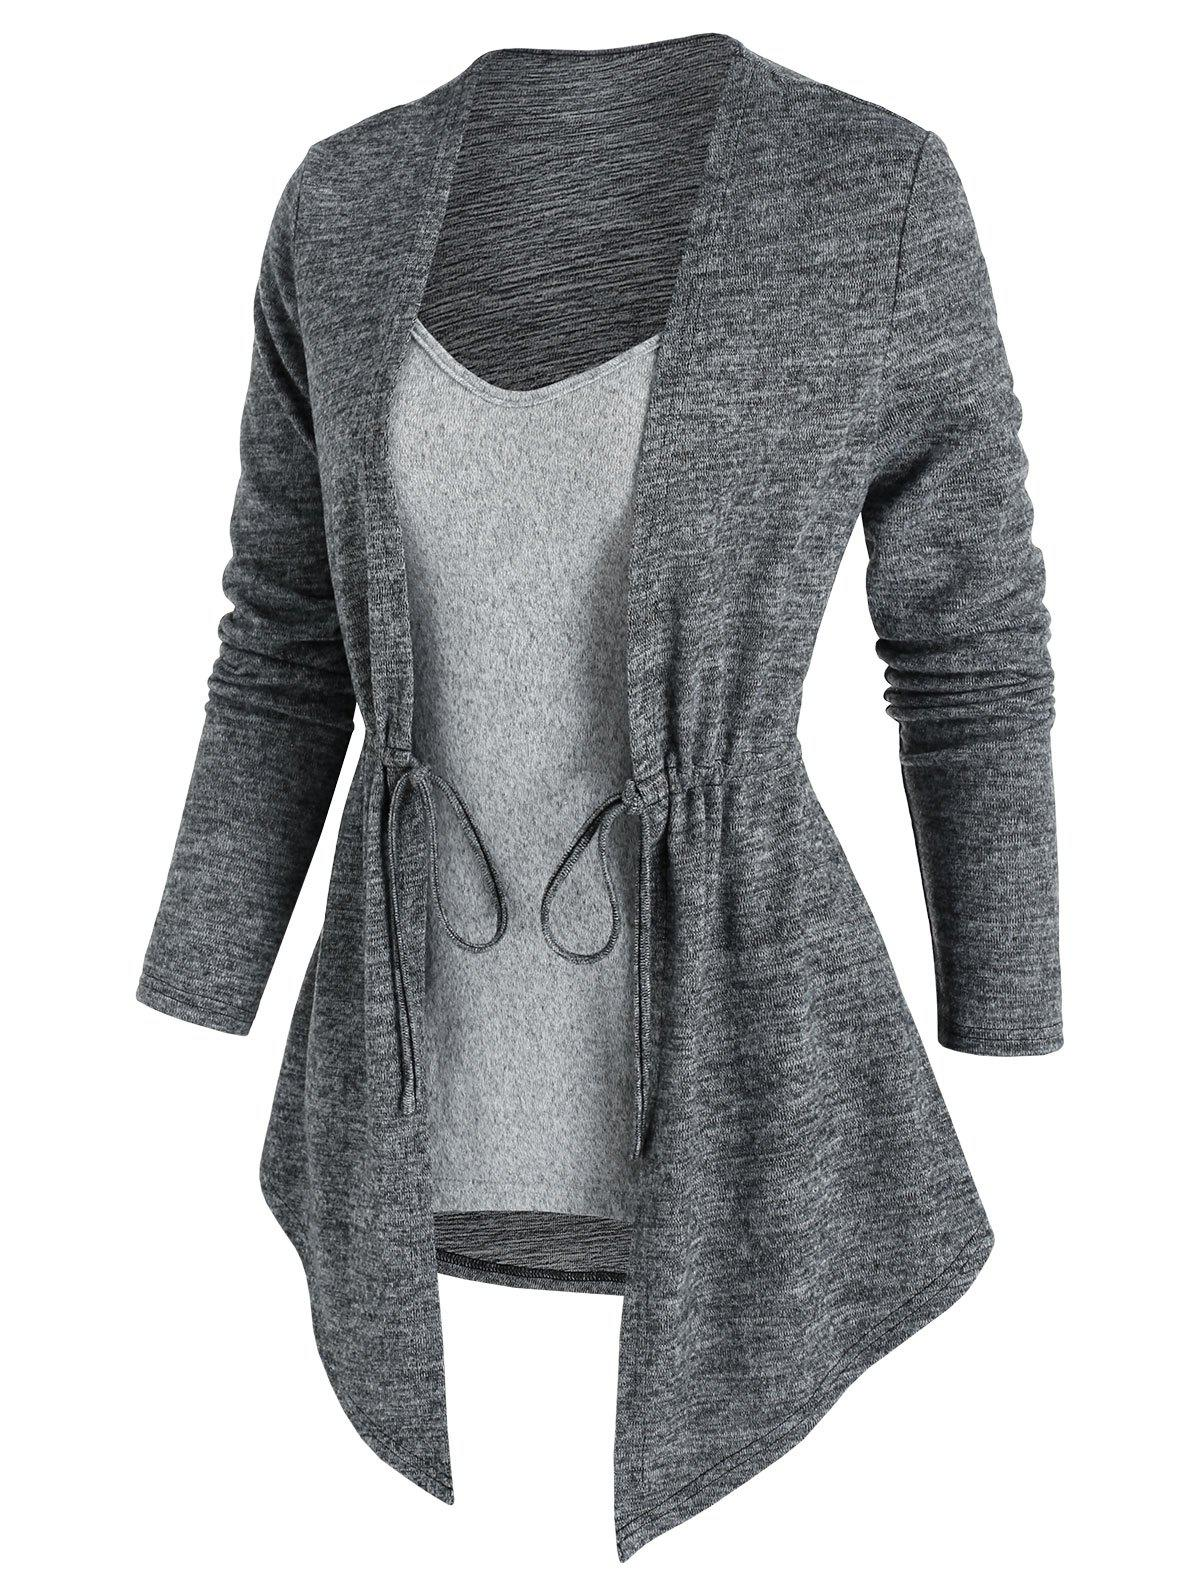 Cinched Contrast Heathered Faux Twinset Sweater - GRAY CLOUD M